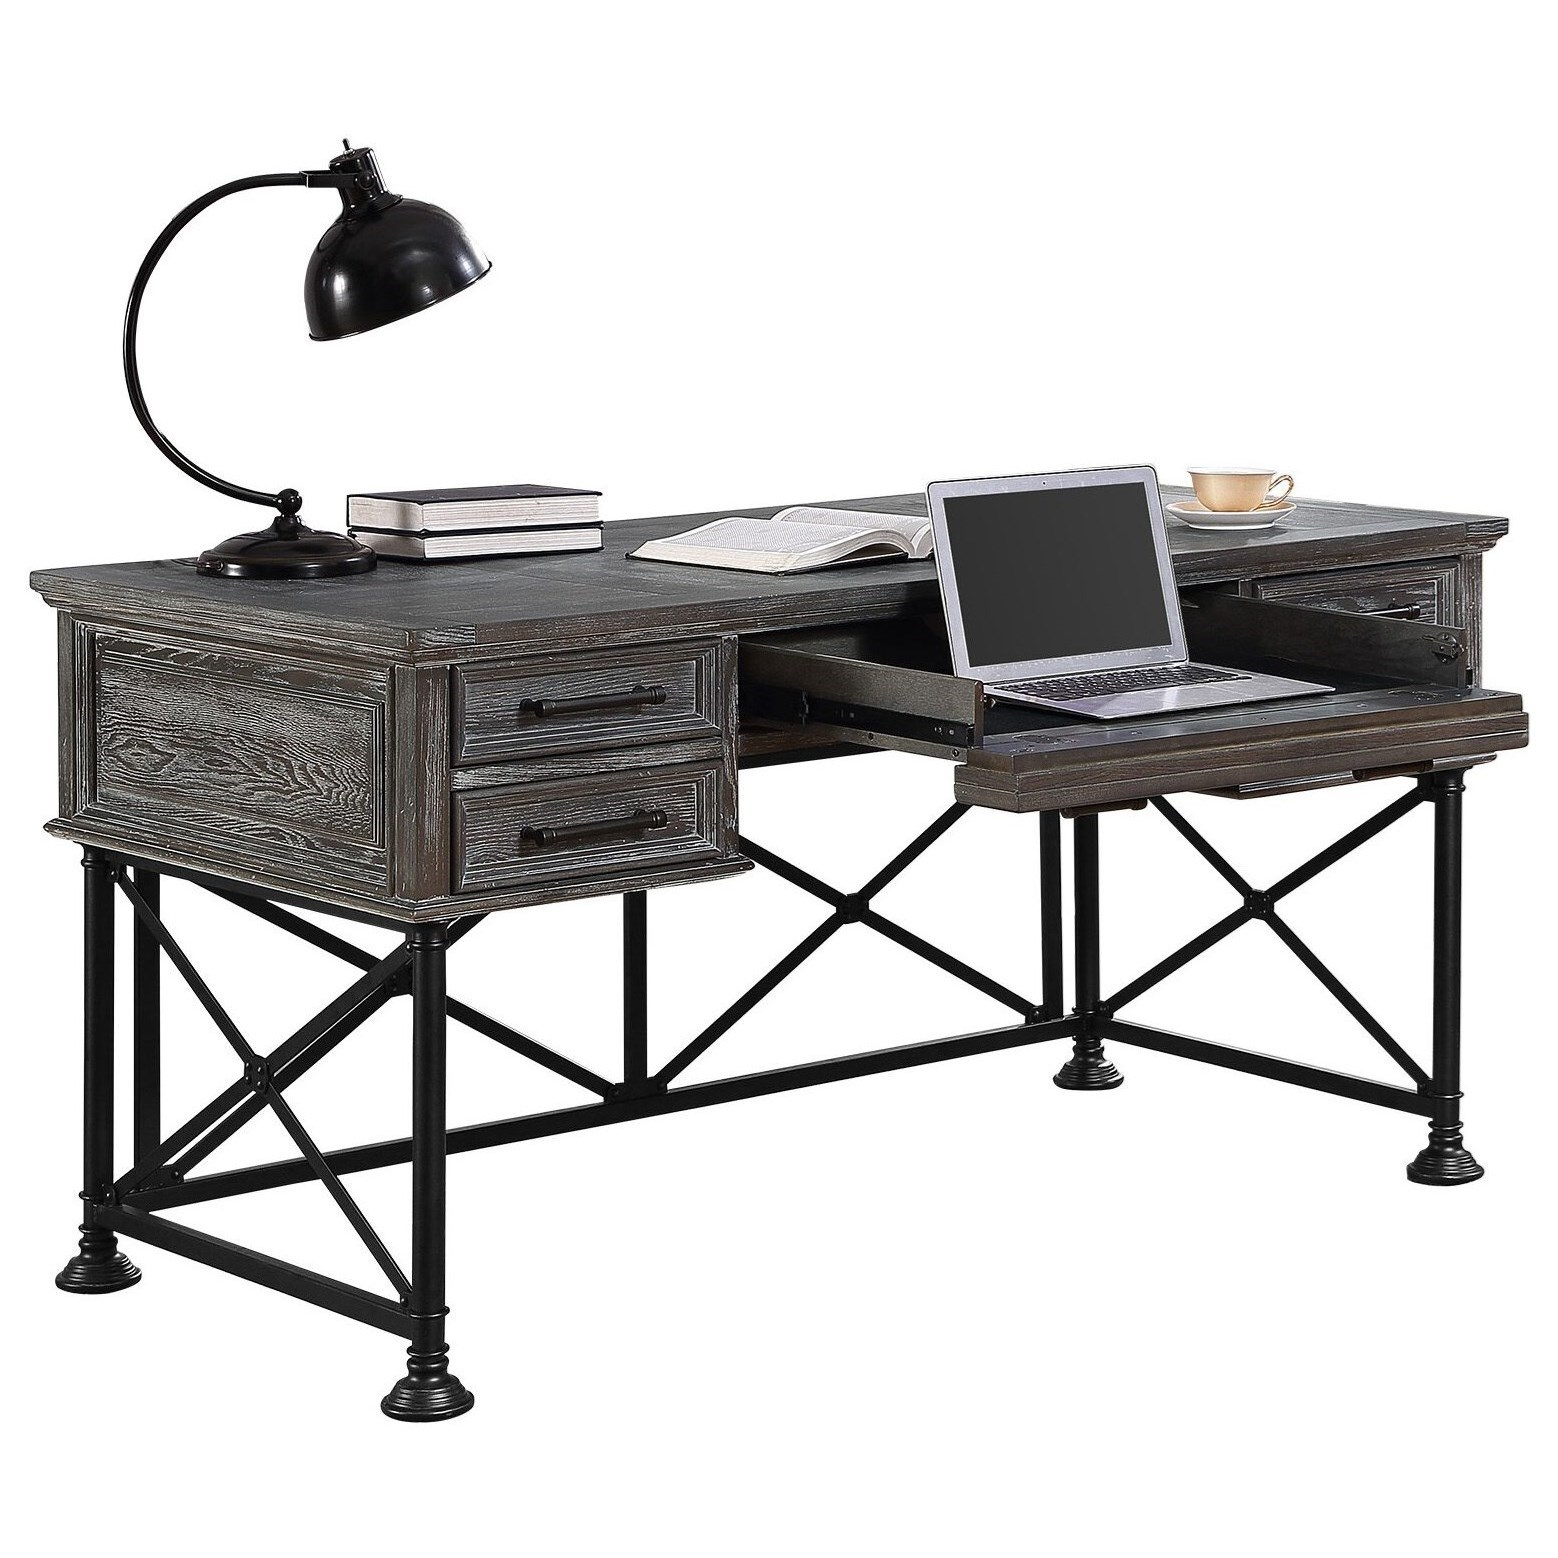 and alex writing gray desktop malin grayscale drawers white chair with grey desk accessories wallpaper